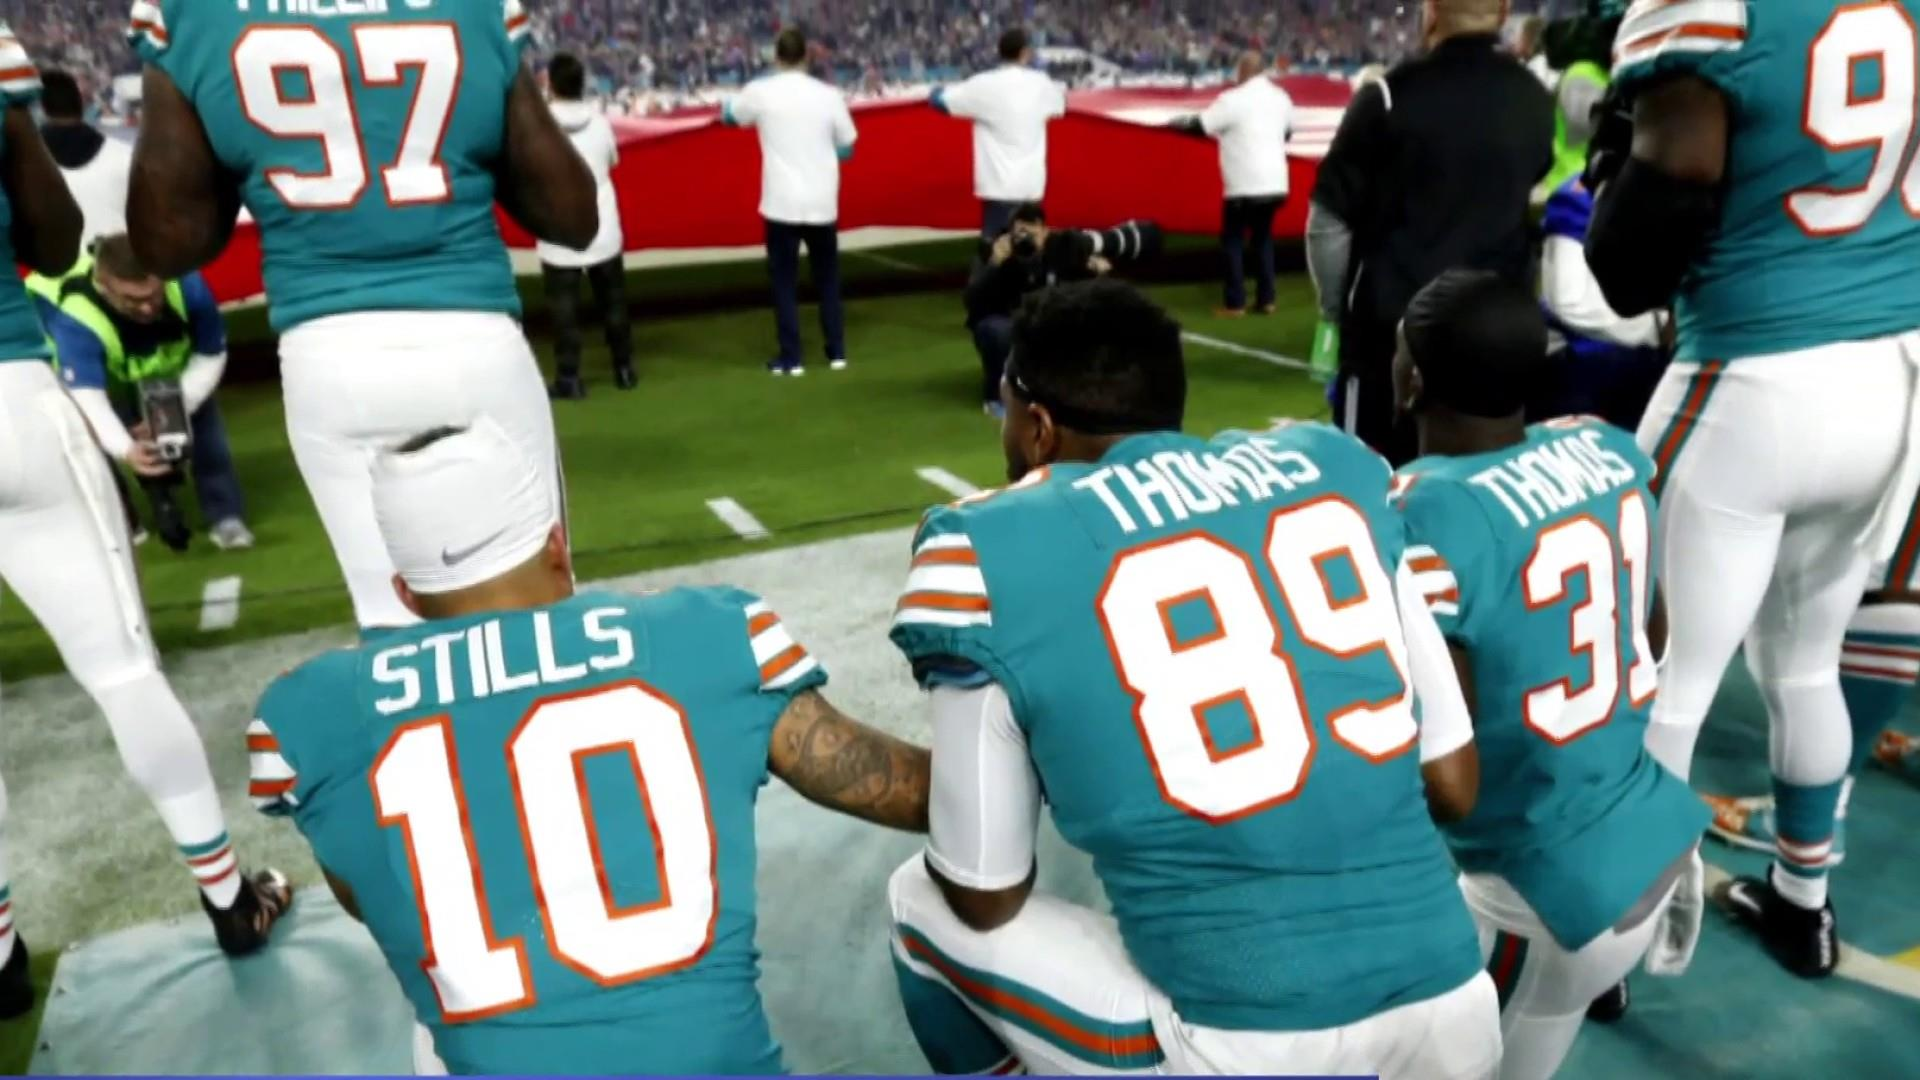 Trump responds to hold on NFL's anthem policy